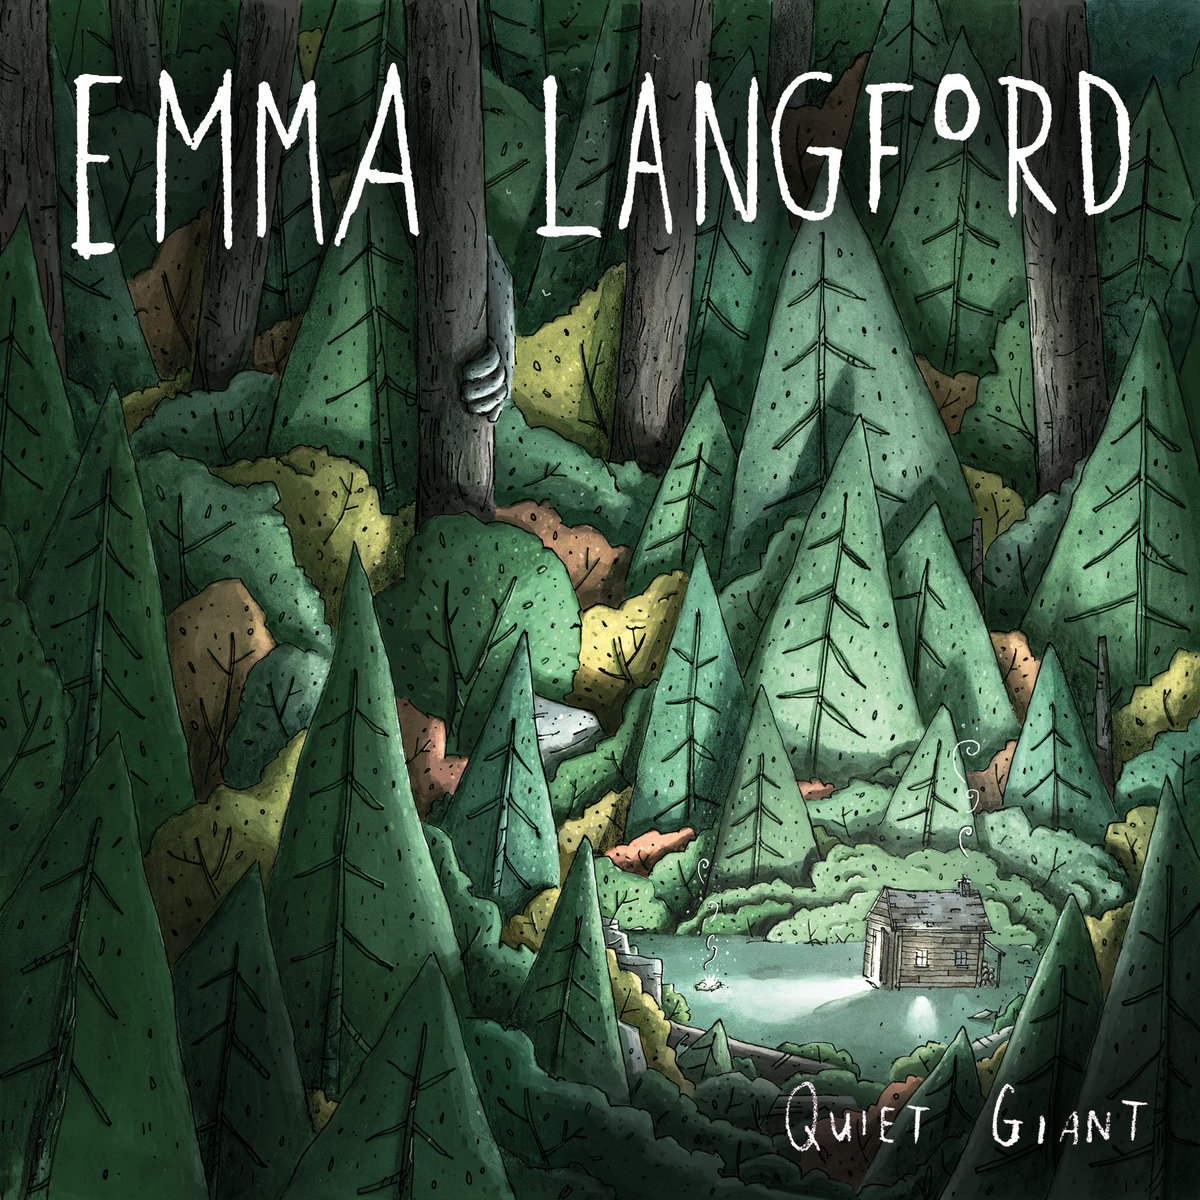 Quiet Giant Emma Langford